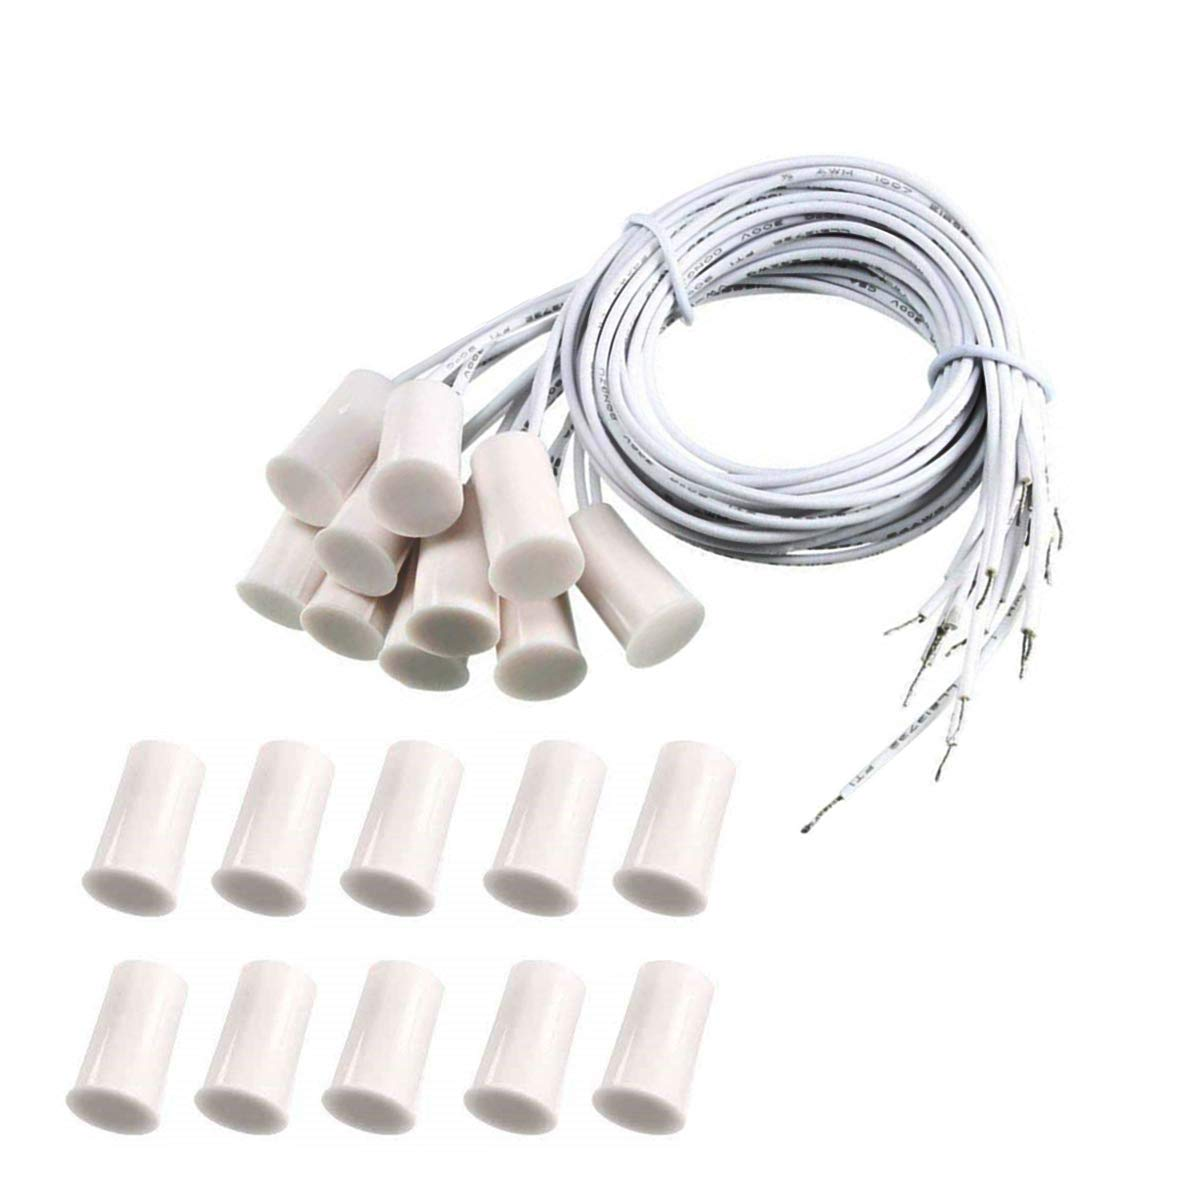 10 Pair RC-33 NC Recessed Wired Security Window Door Contact Sensor Alarm Magnetic Reed Switch White